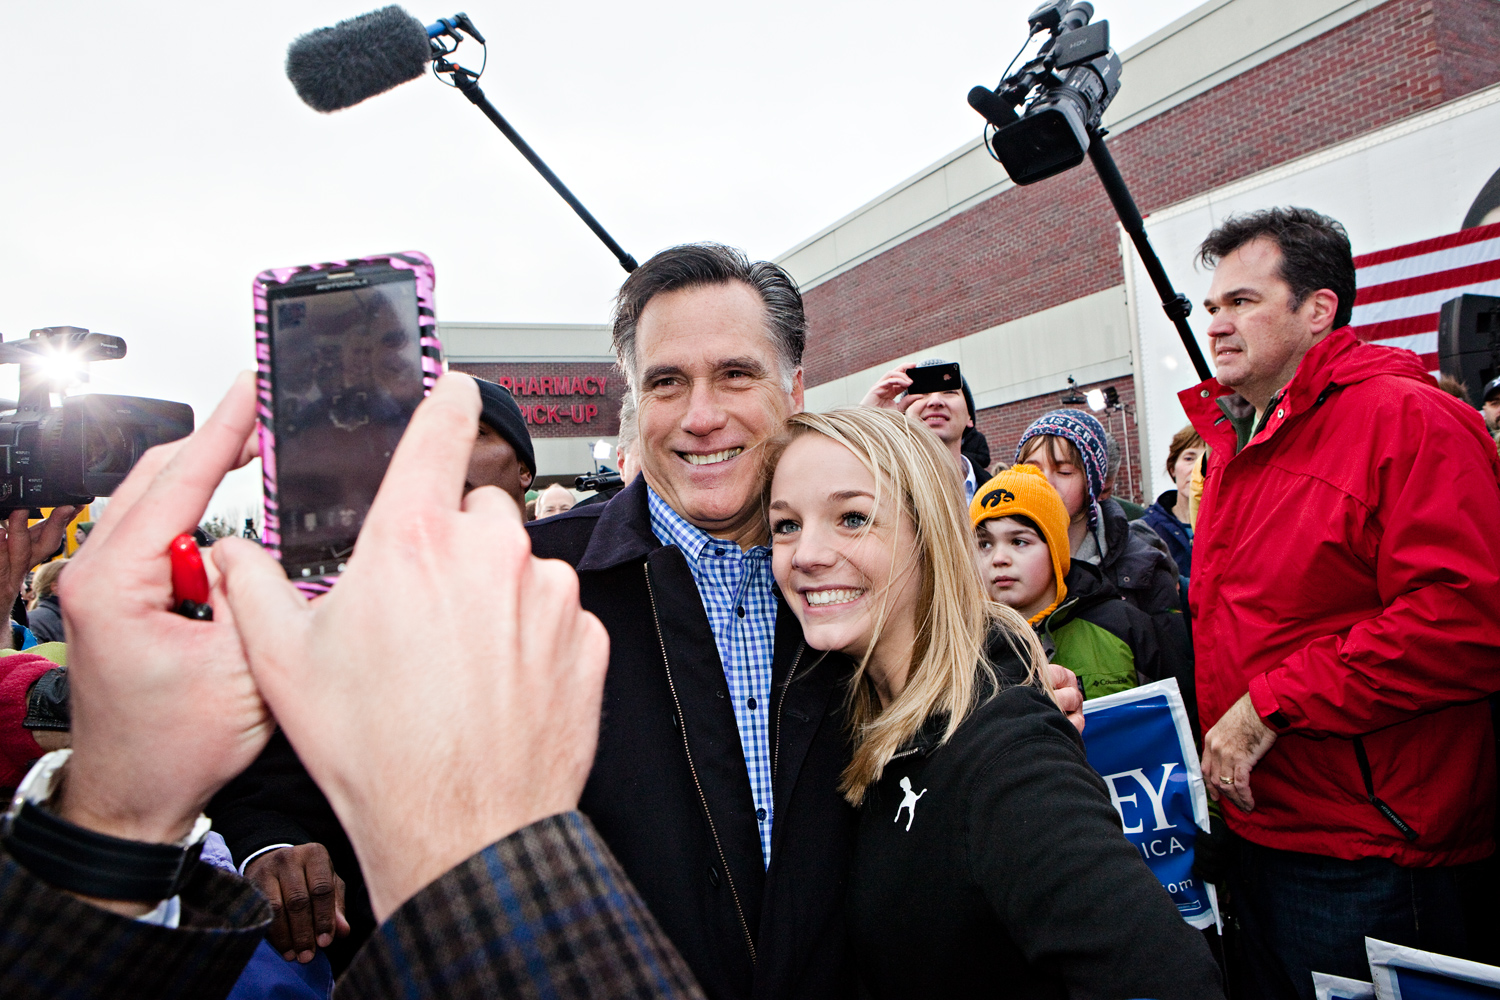 Mitt Romney poses for photos with a young supporter at a campaign event at the Hy-Vee parking lot in West Des Moines, Iowa on December 30, 2011.